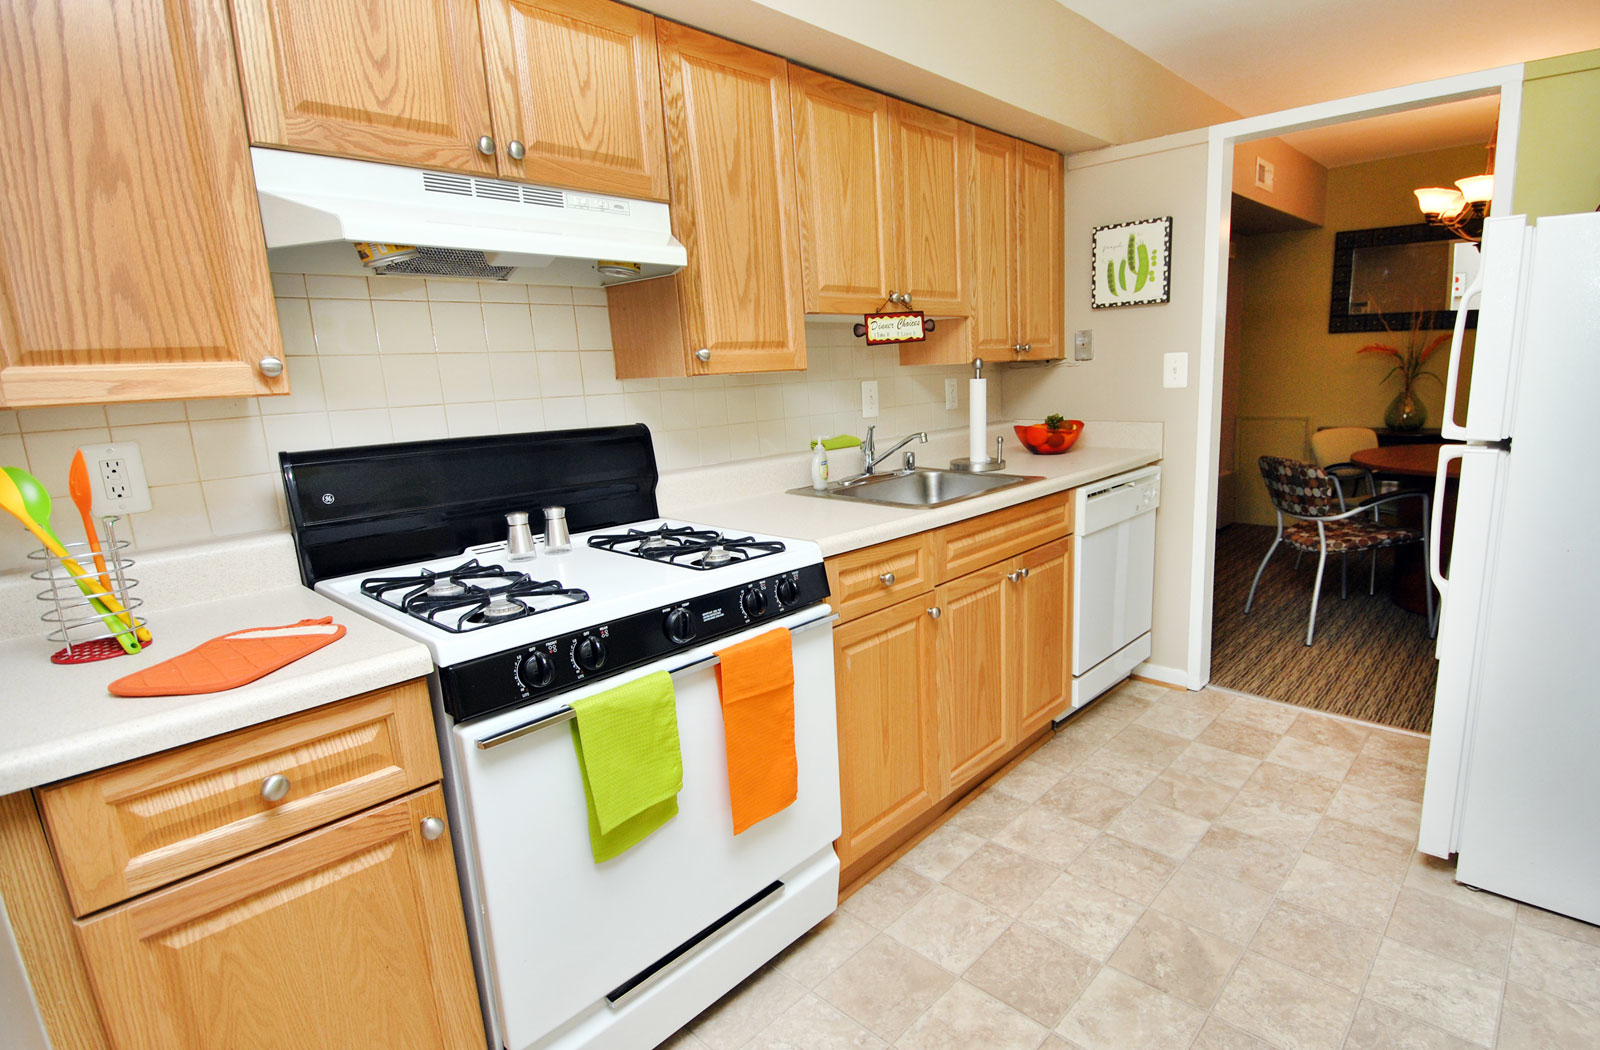 Brook view apartments in baltimore md 410 358 3 - 3 bedroom apartments in baltimore ...